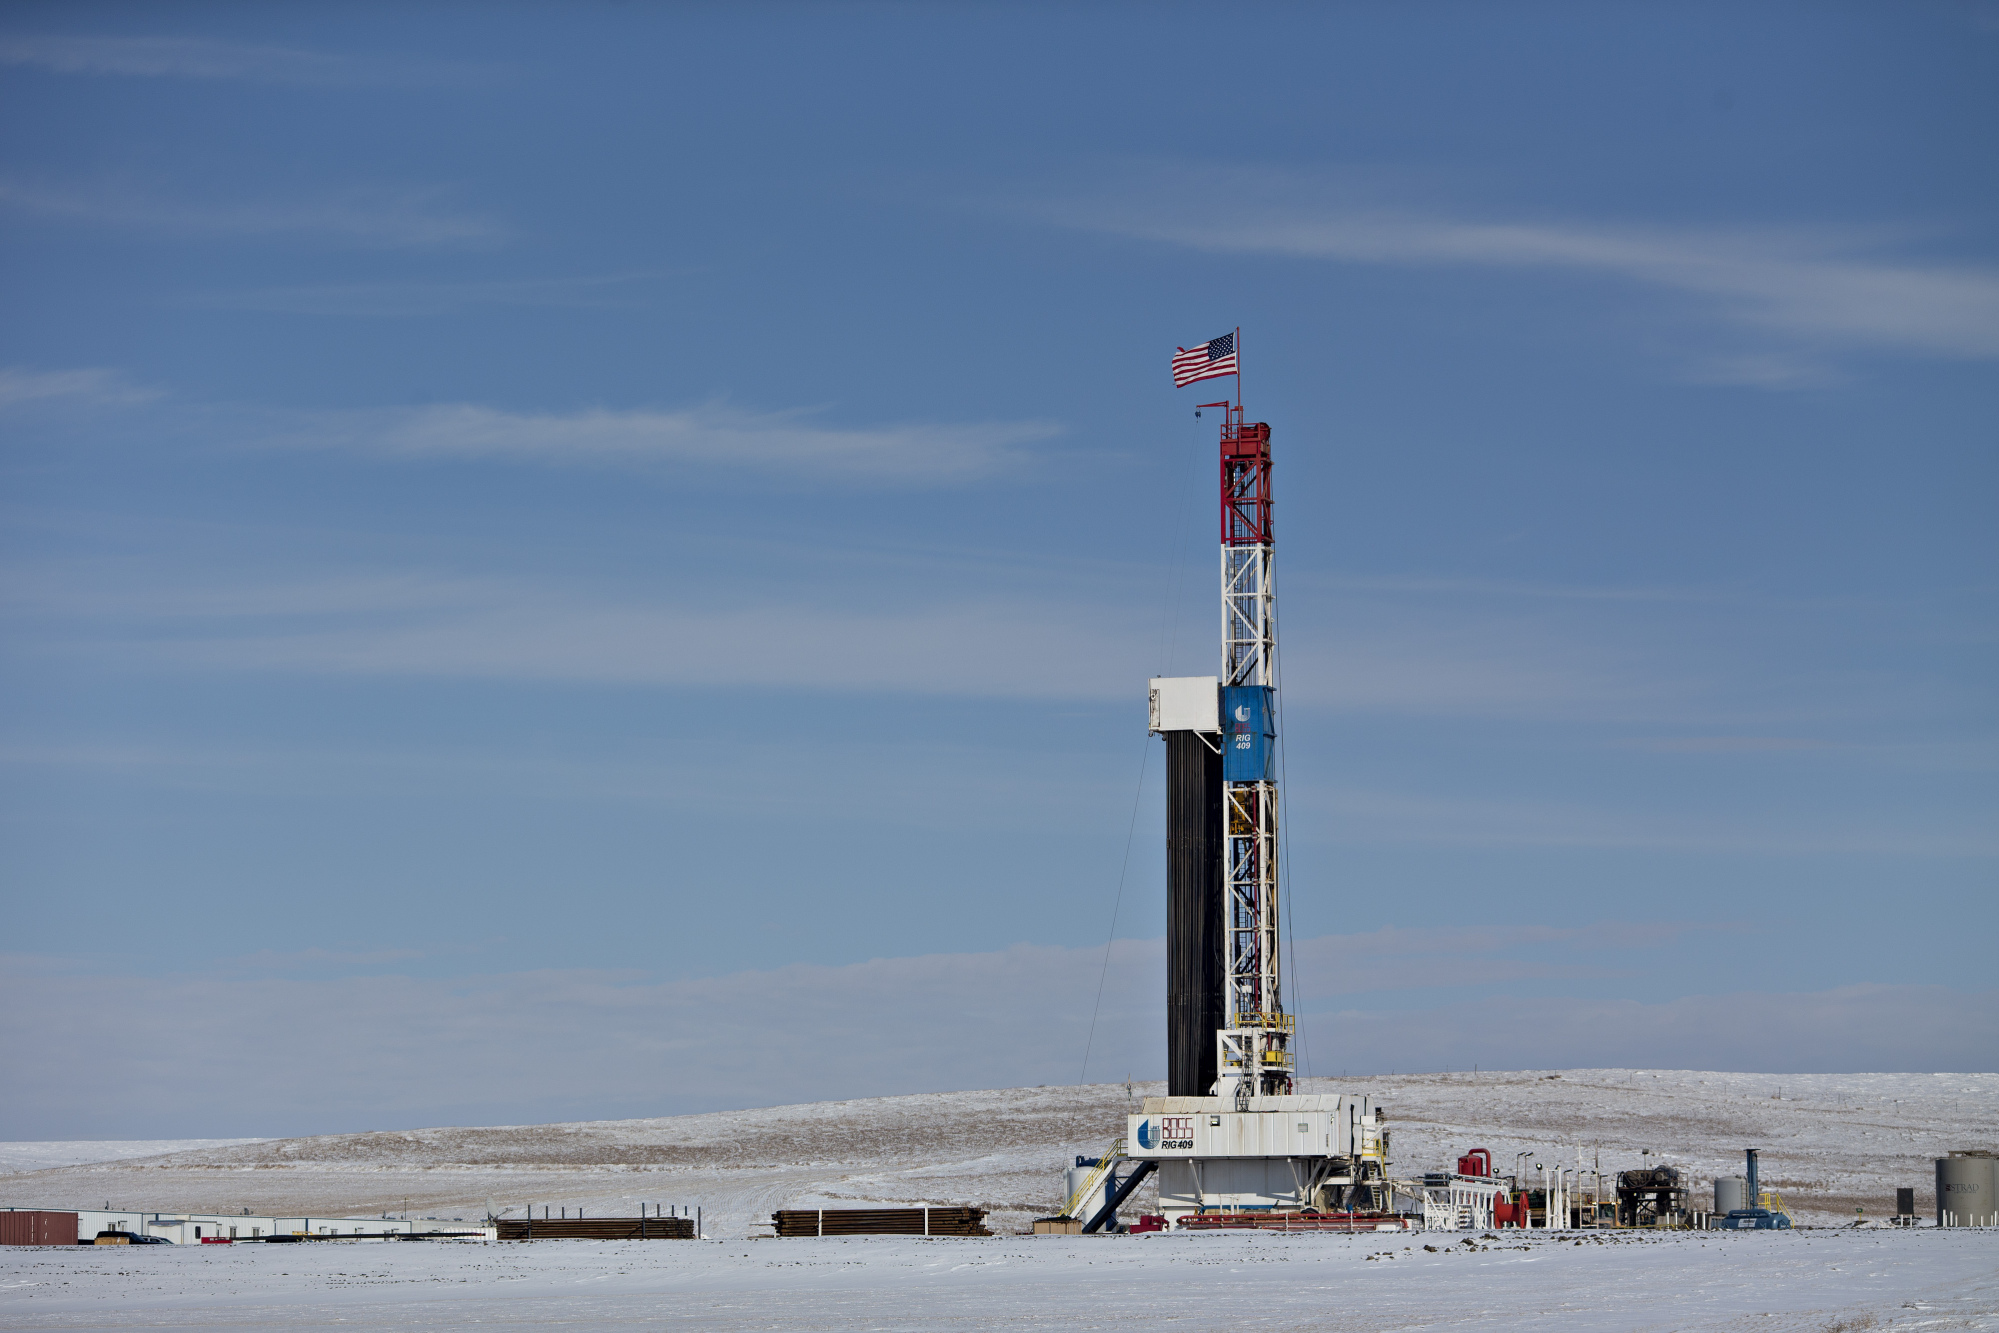 An American flag flies on top of a Unit Drilling Co. rig in the Bakken Formation outside Watford City, North Dakota, U.S., on Friday, March 9, 2018.  Photographer: Daniel Acker/Bloomberg